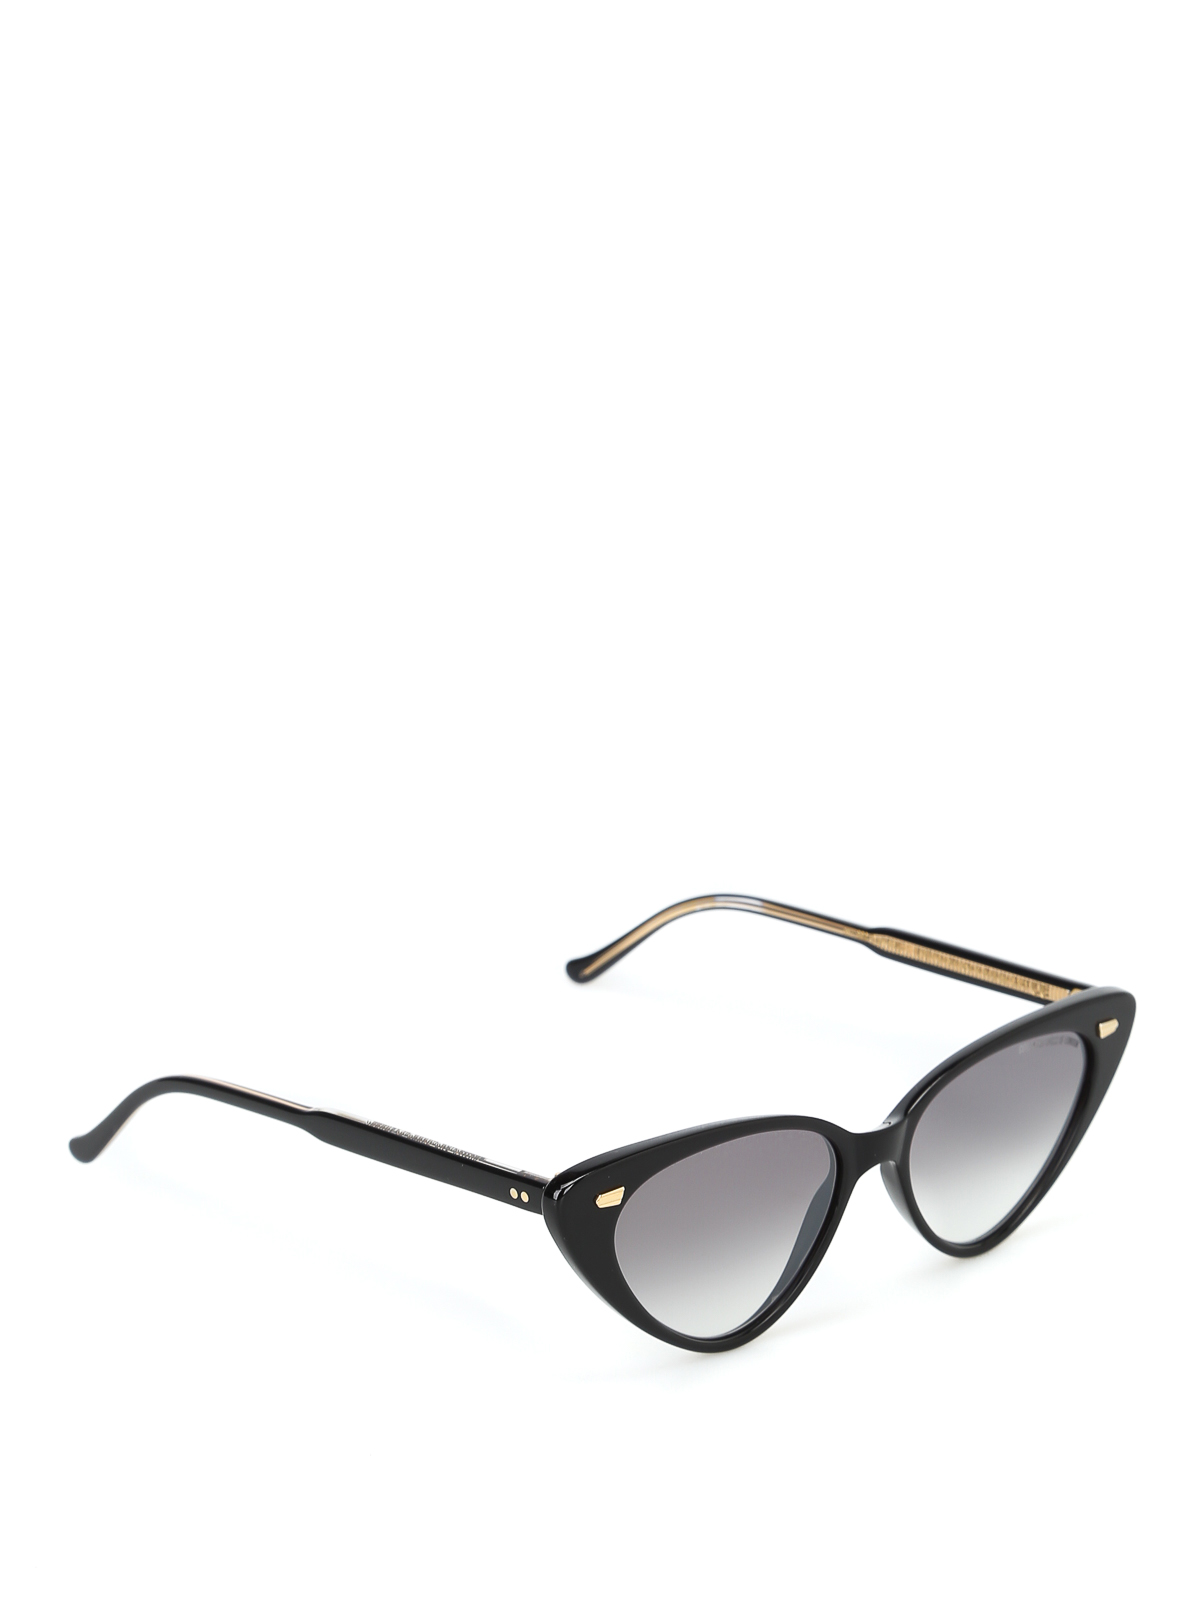 316e98915ce CUTLER AND GROSS  sunglasses - Super trendy faded lens cat-eye sunglasses